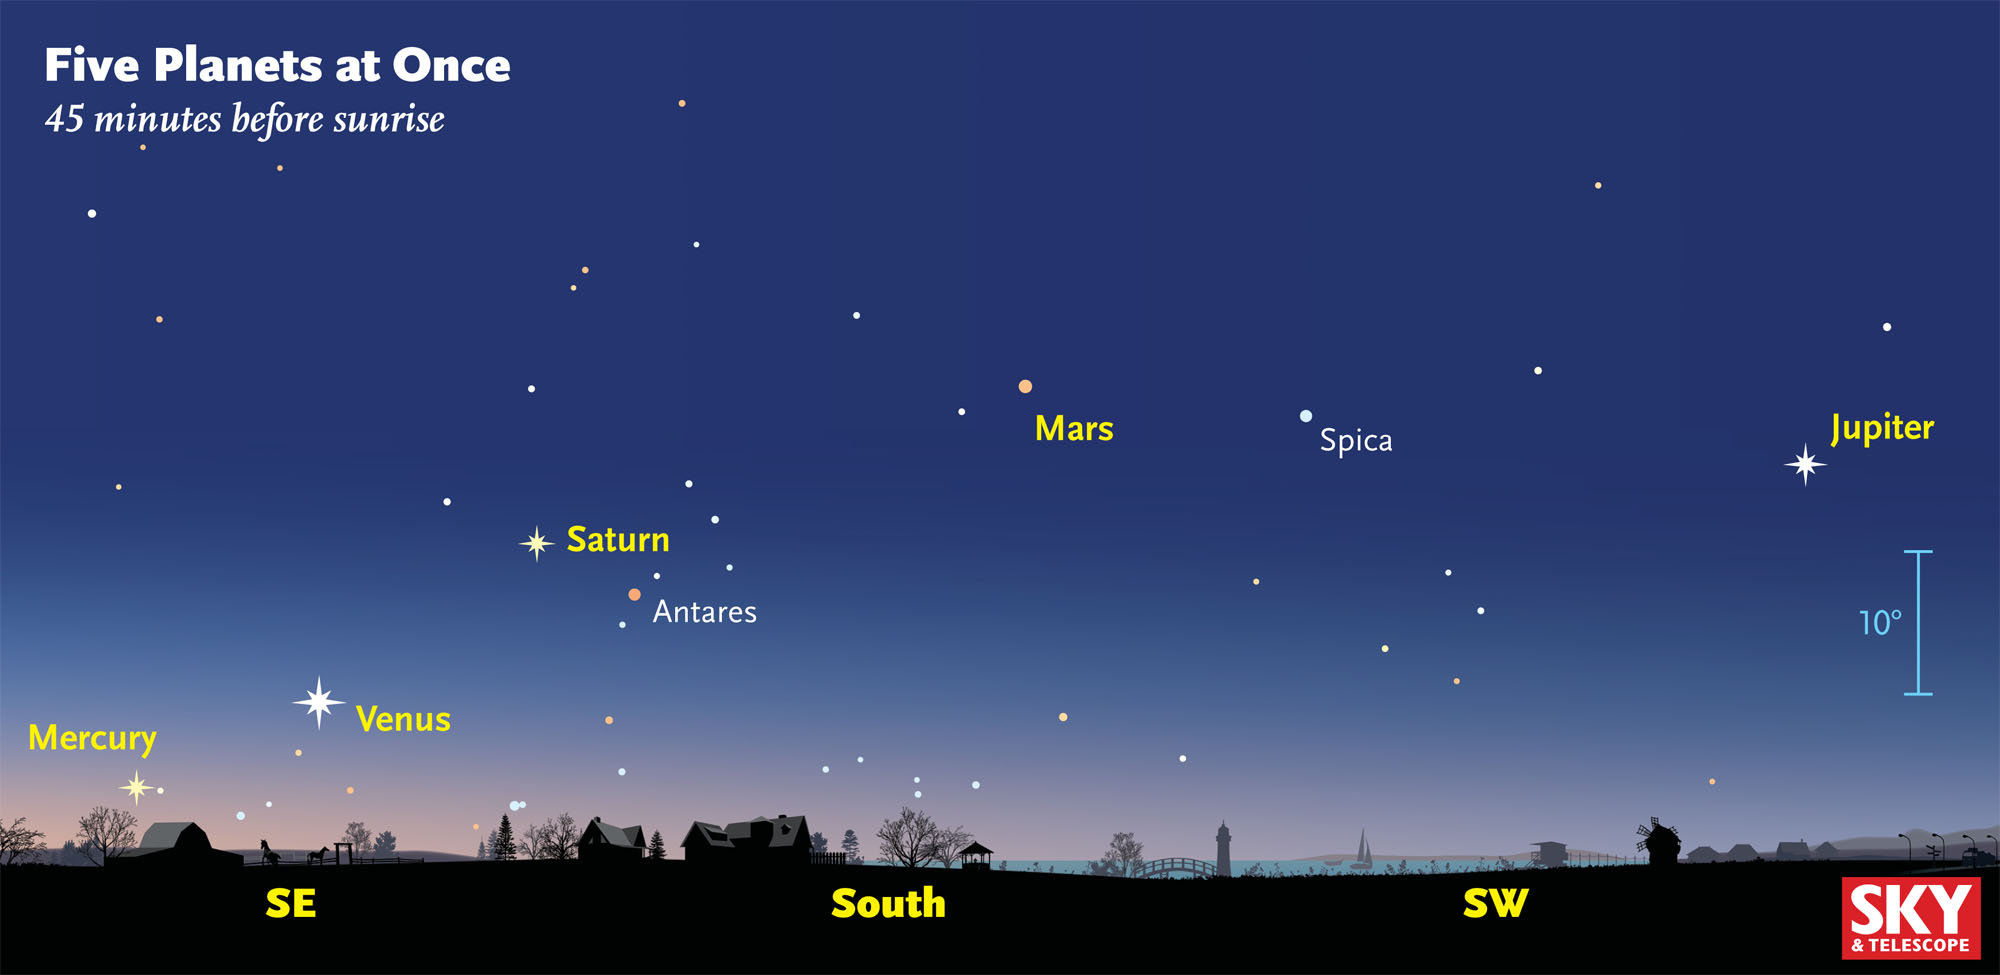 How And When To See Five Planets At Once